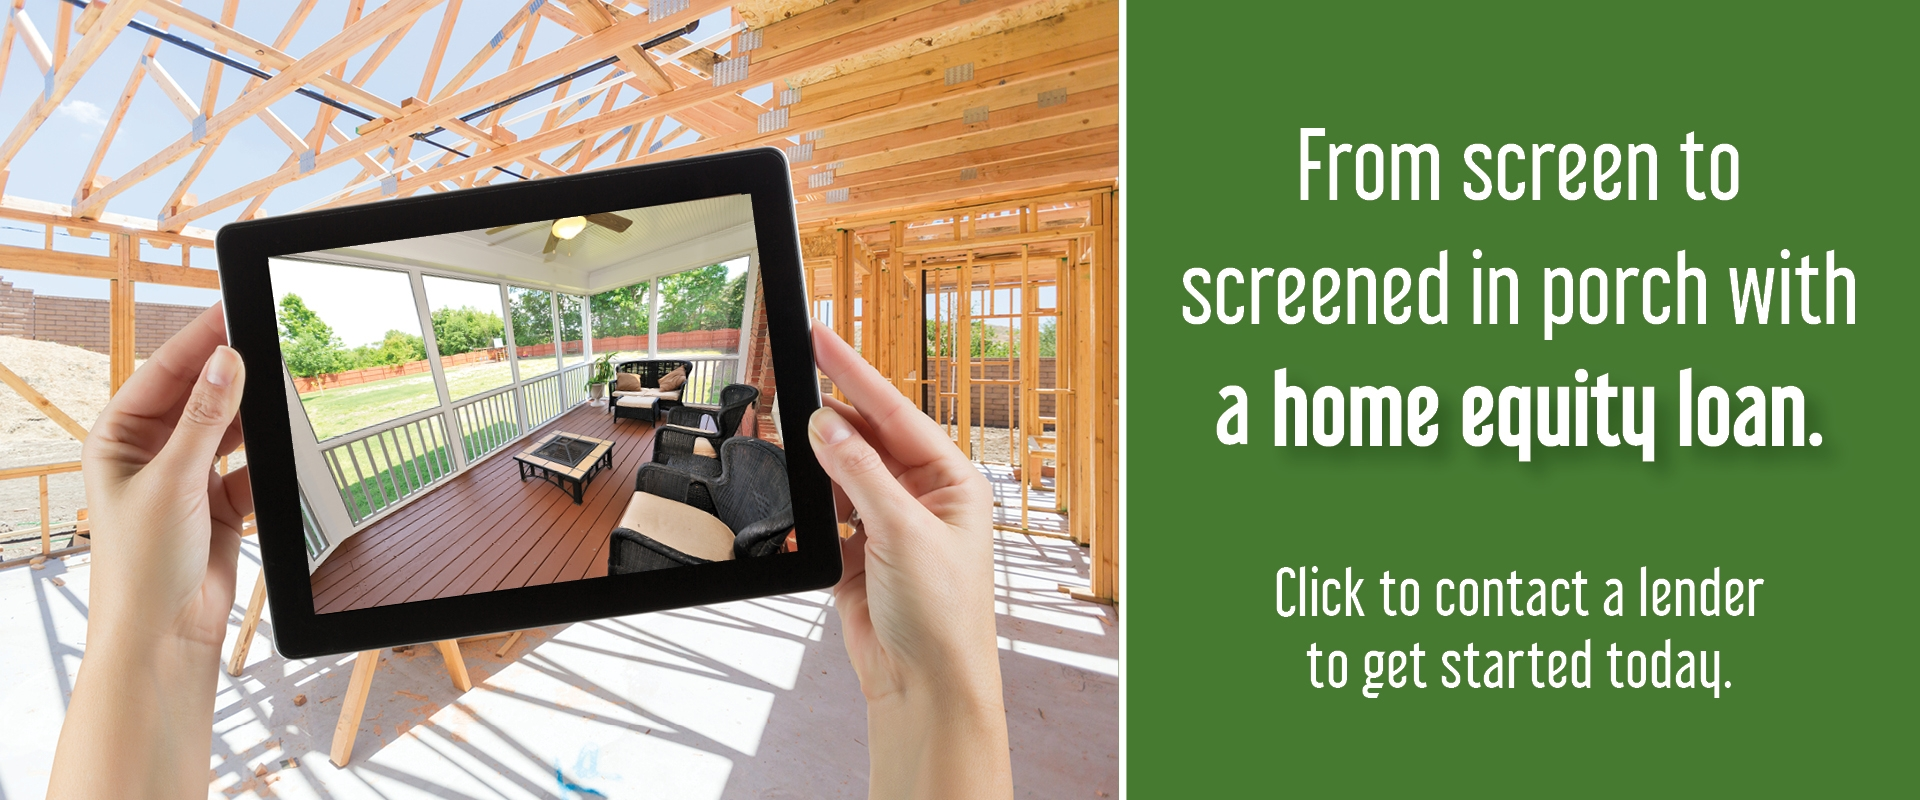 Construction site with image of screened in porch on ipad - From screen to screened in porch with a home equity loan Banner